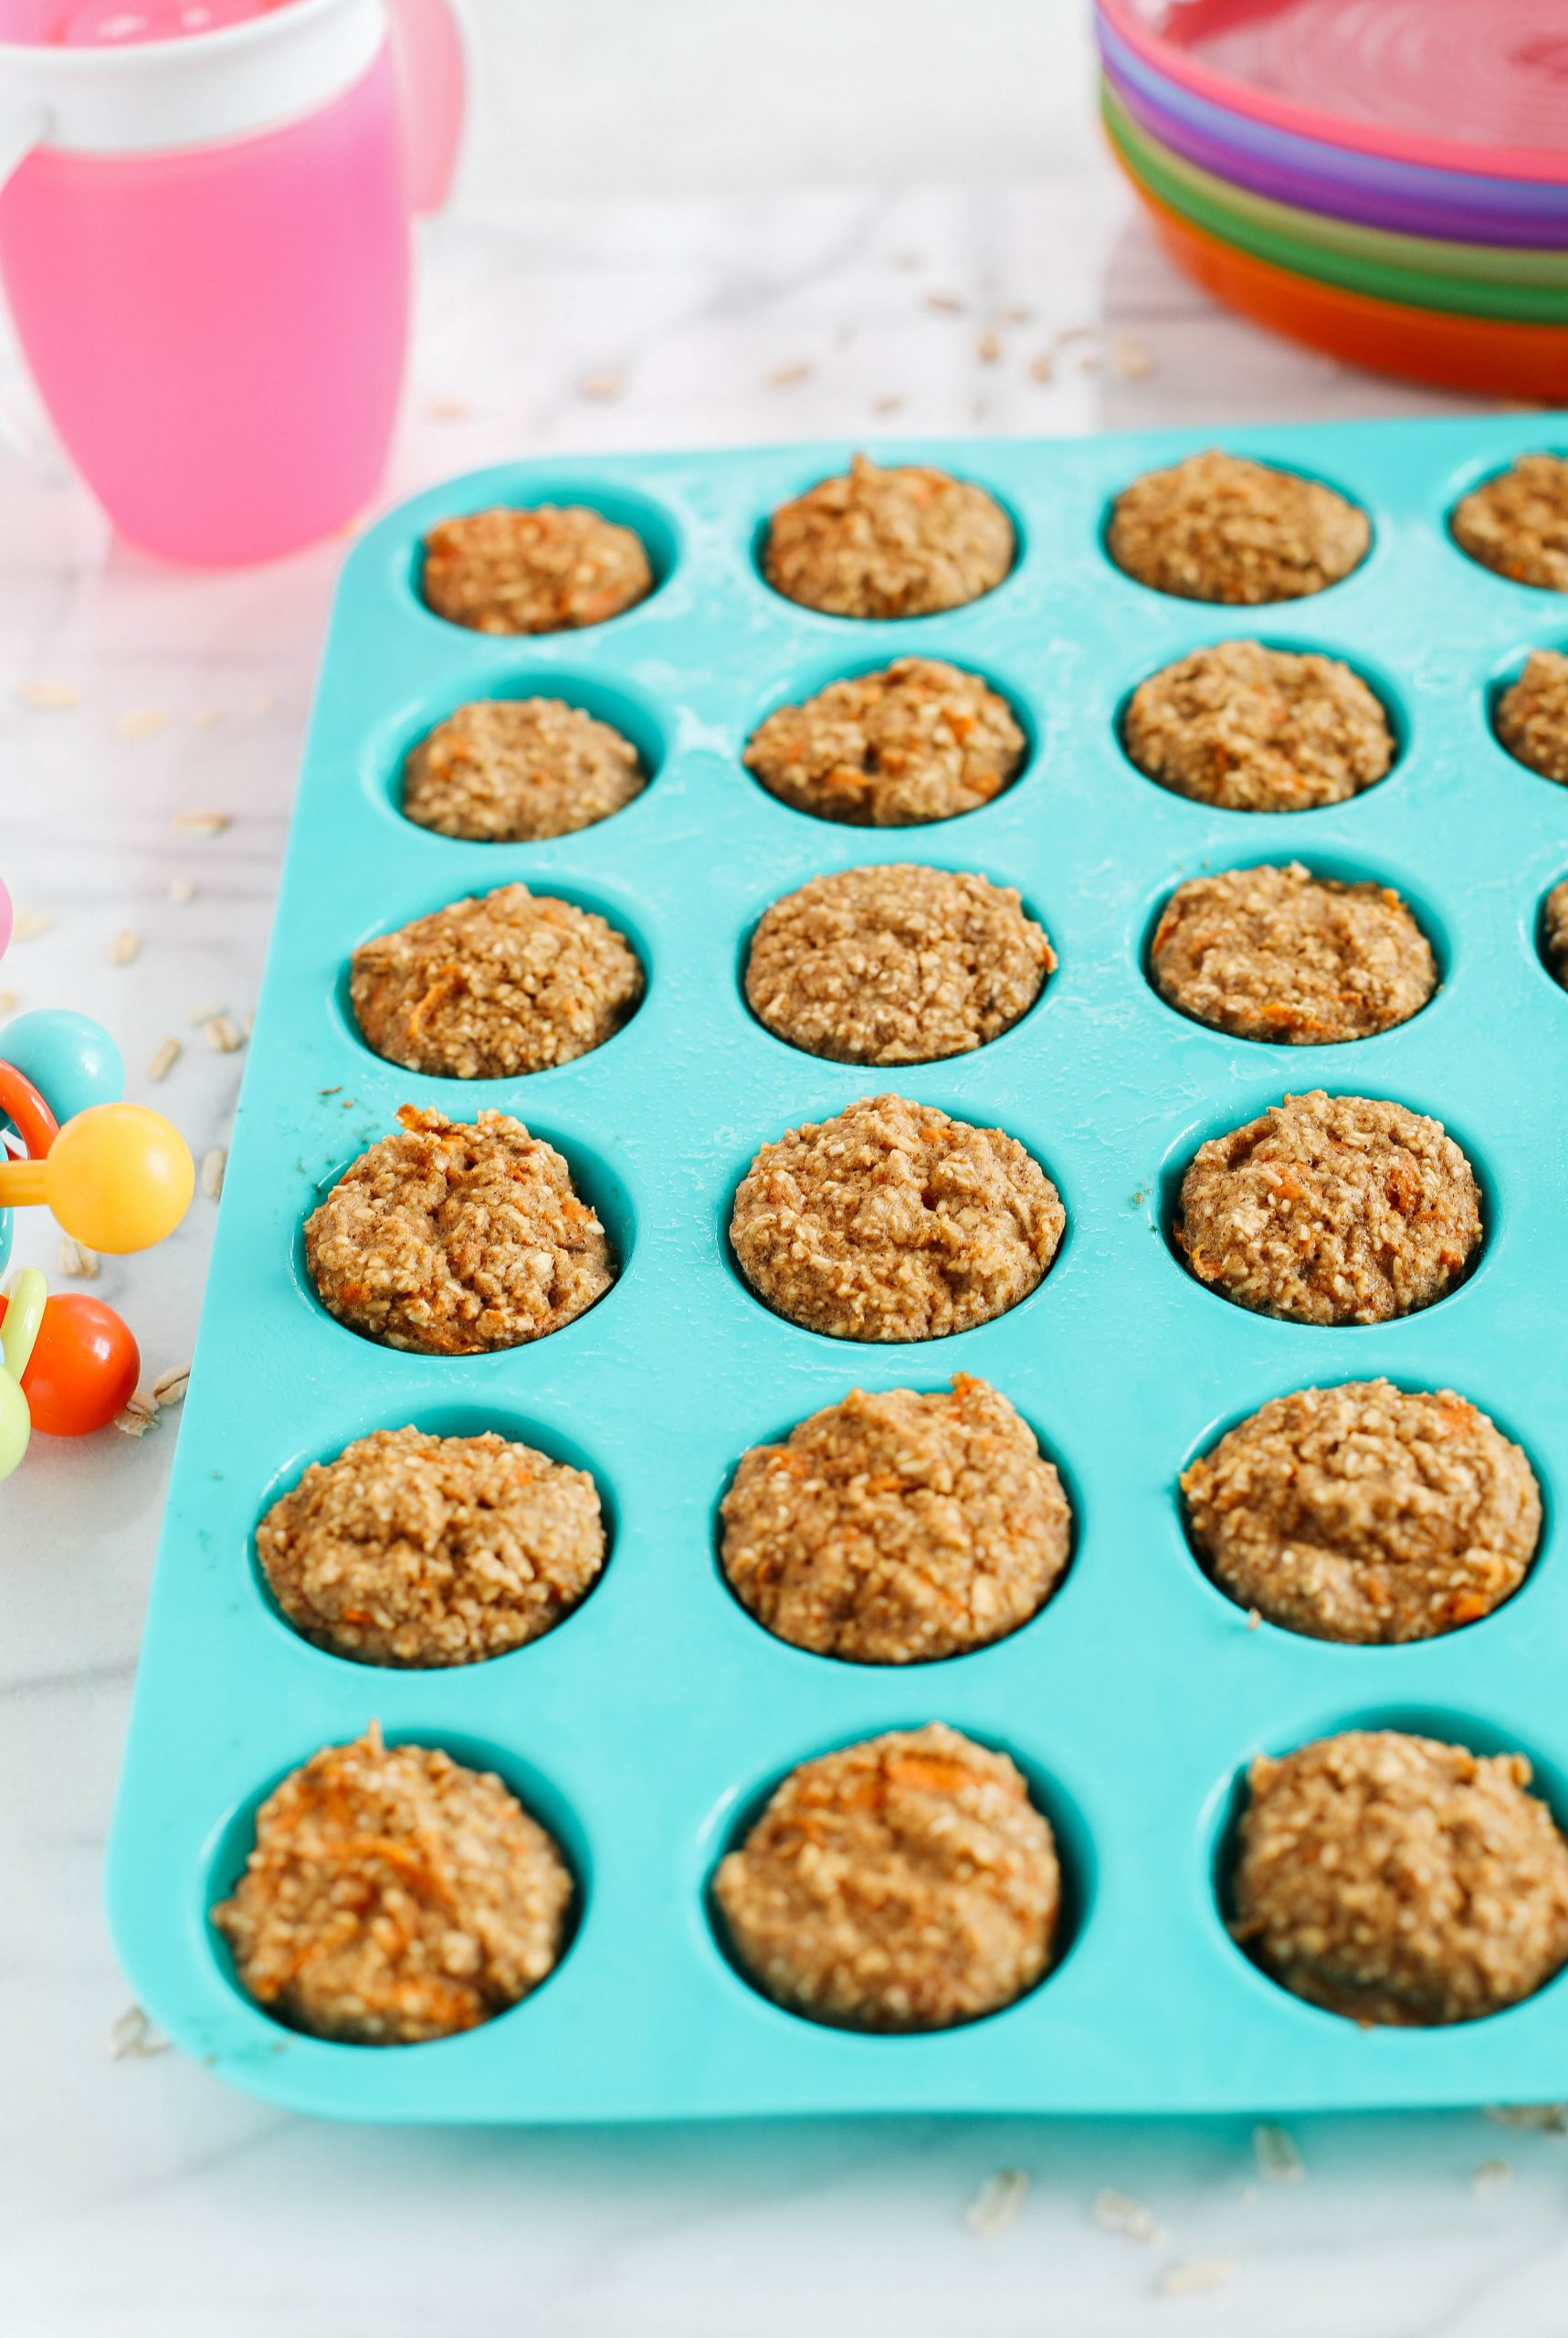 These bite-sized muffins are healthy, nutritious and the perfect way to use up leftover jars of baby food!  No added sugar and your little ones will love them!